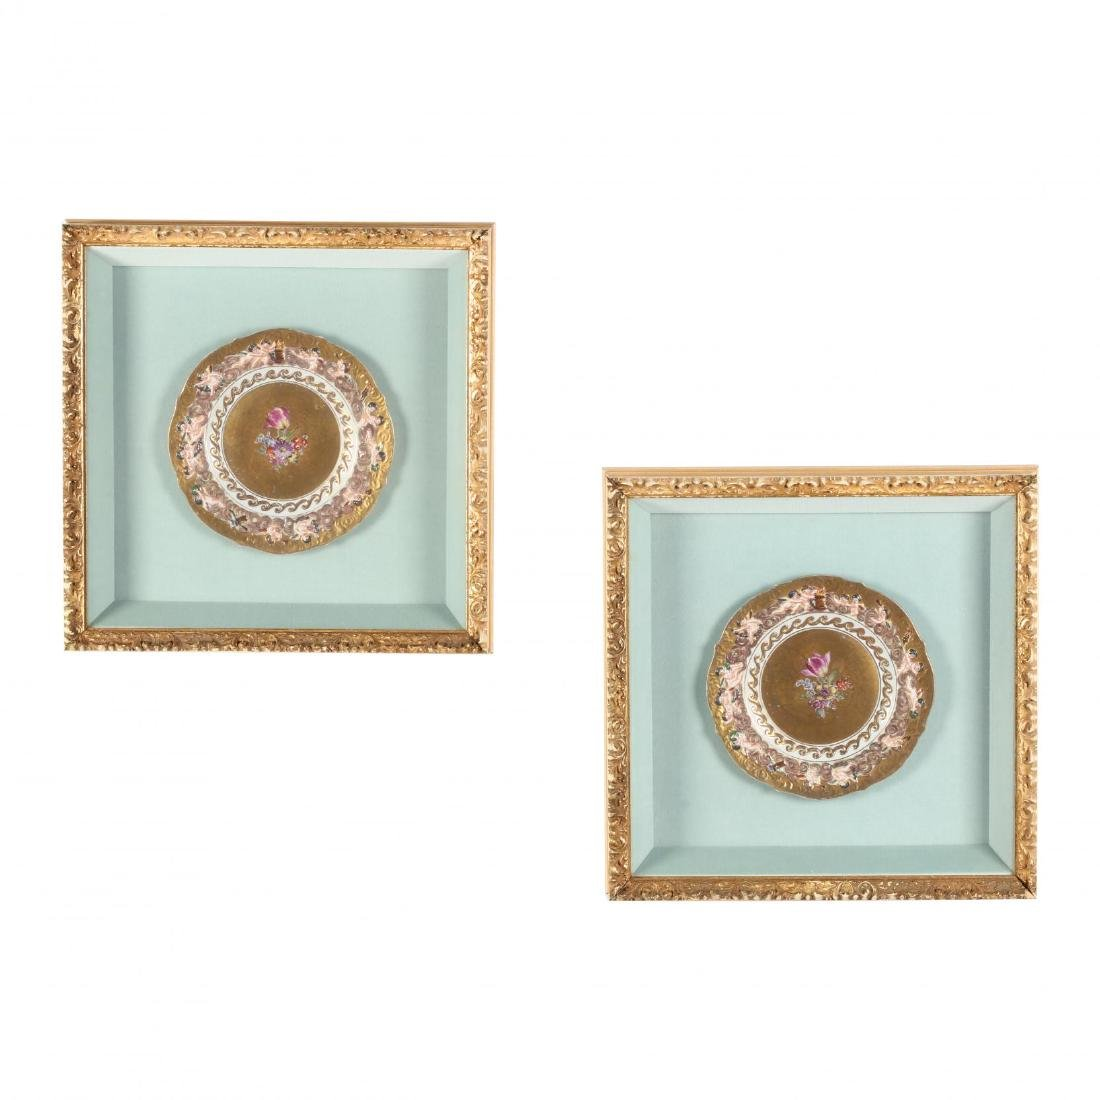 A Pair of Framed Capodimonte Plates